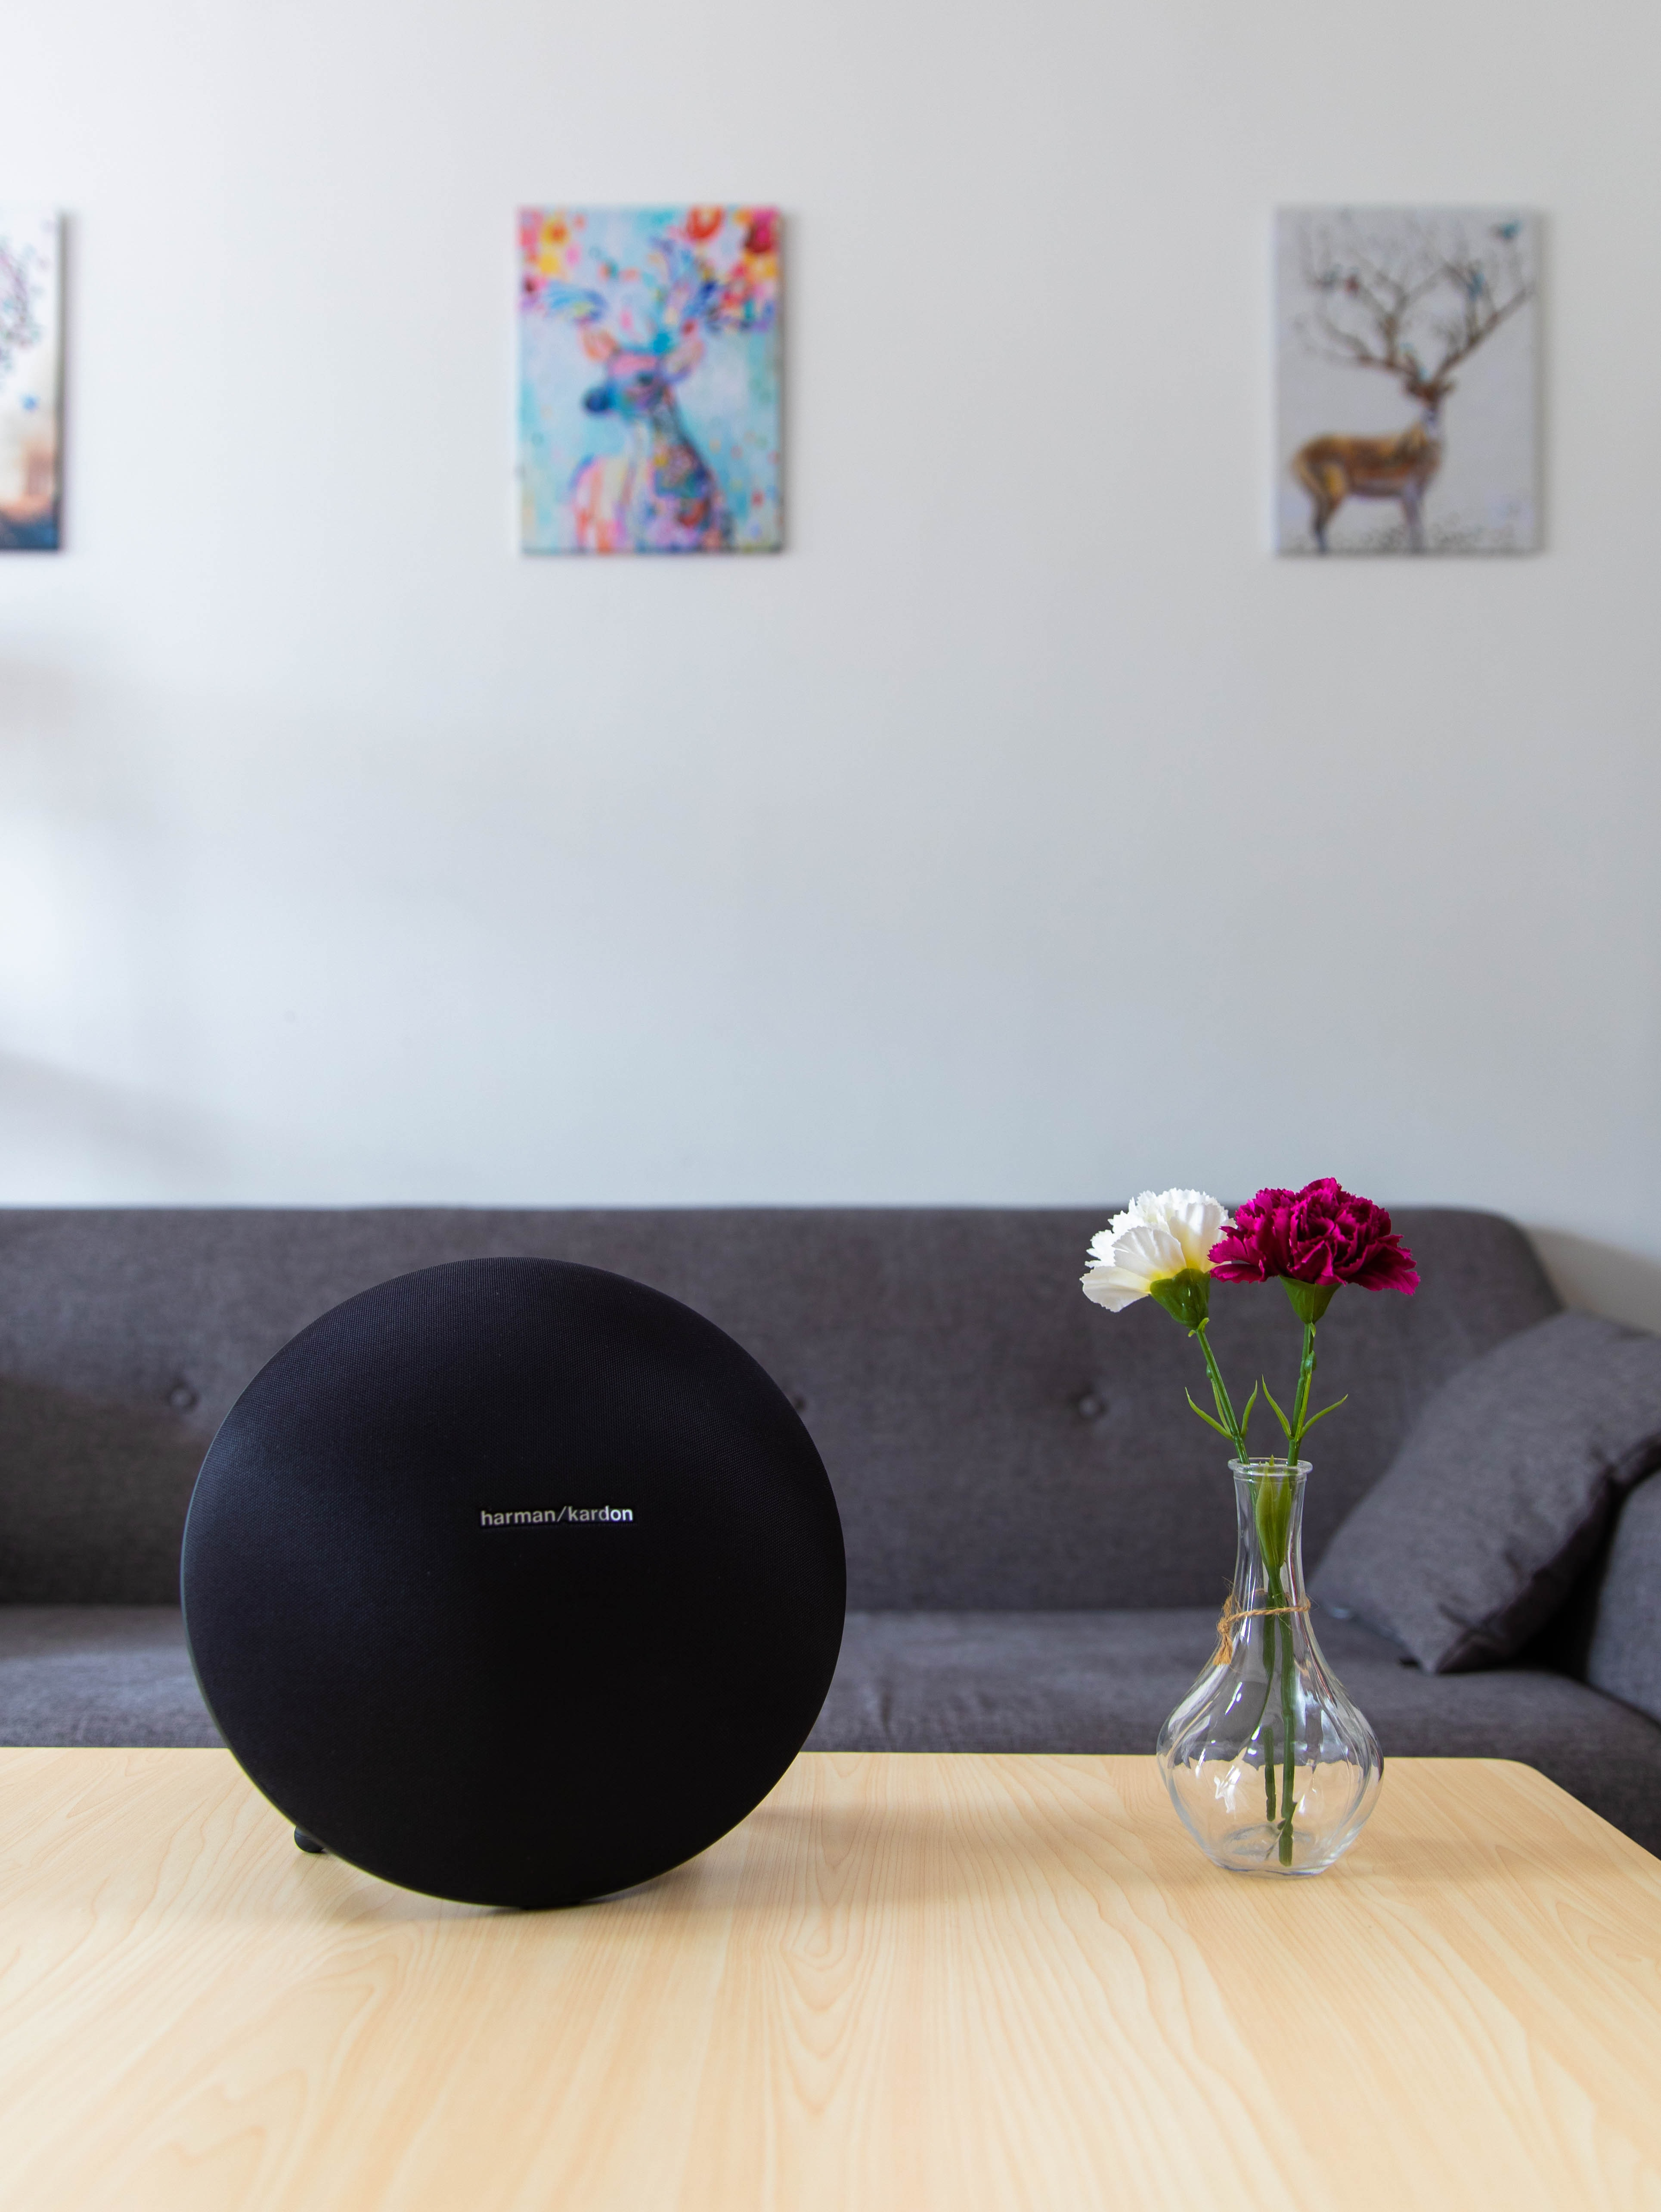 round black Harman/Kardon wireless speaker